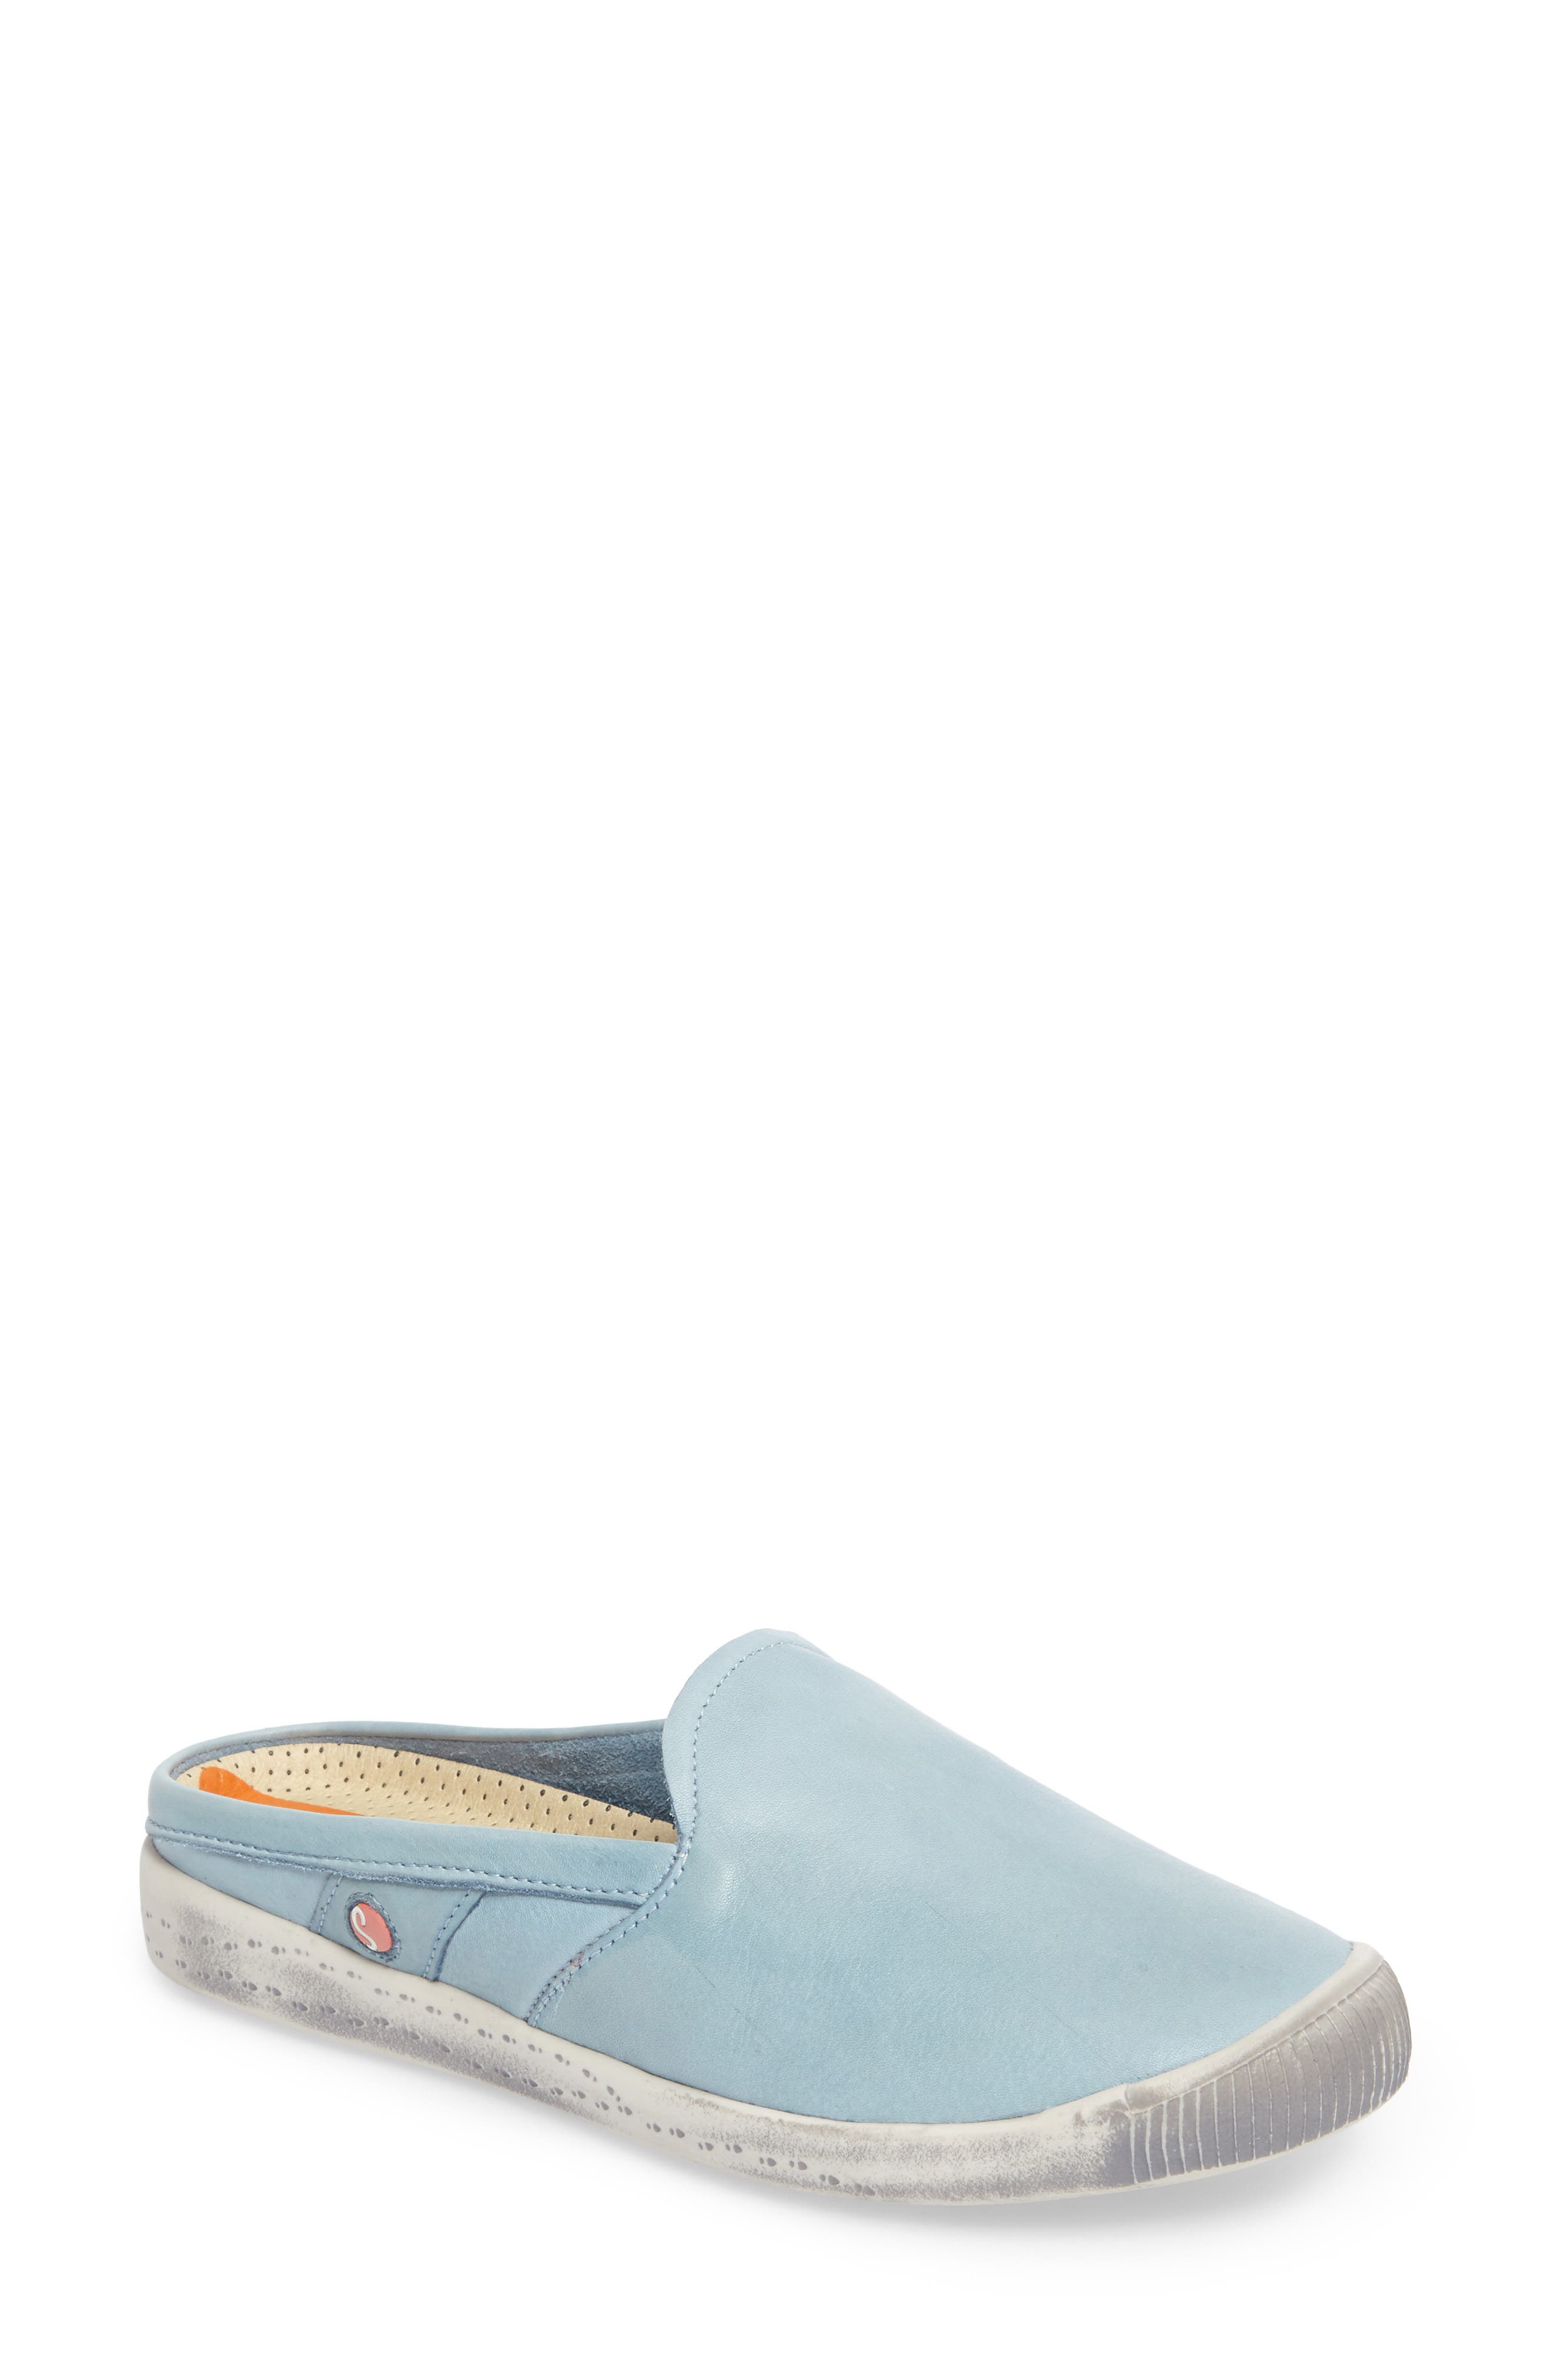 Softinos by Fly London Imo Sneaker Mule (Women)